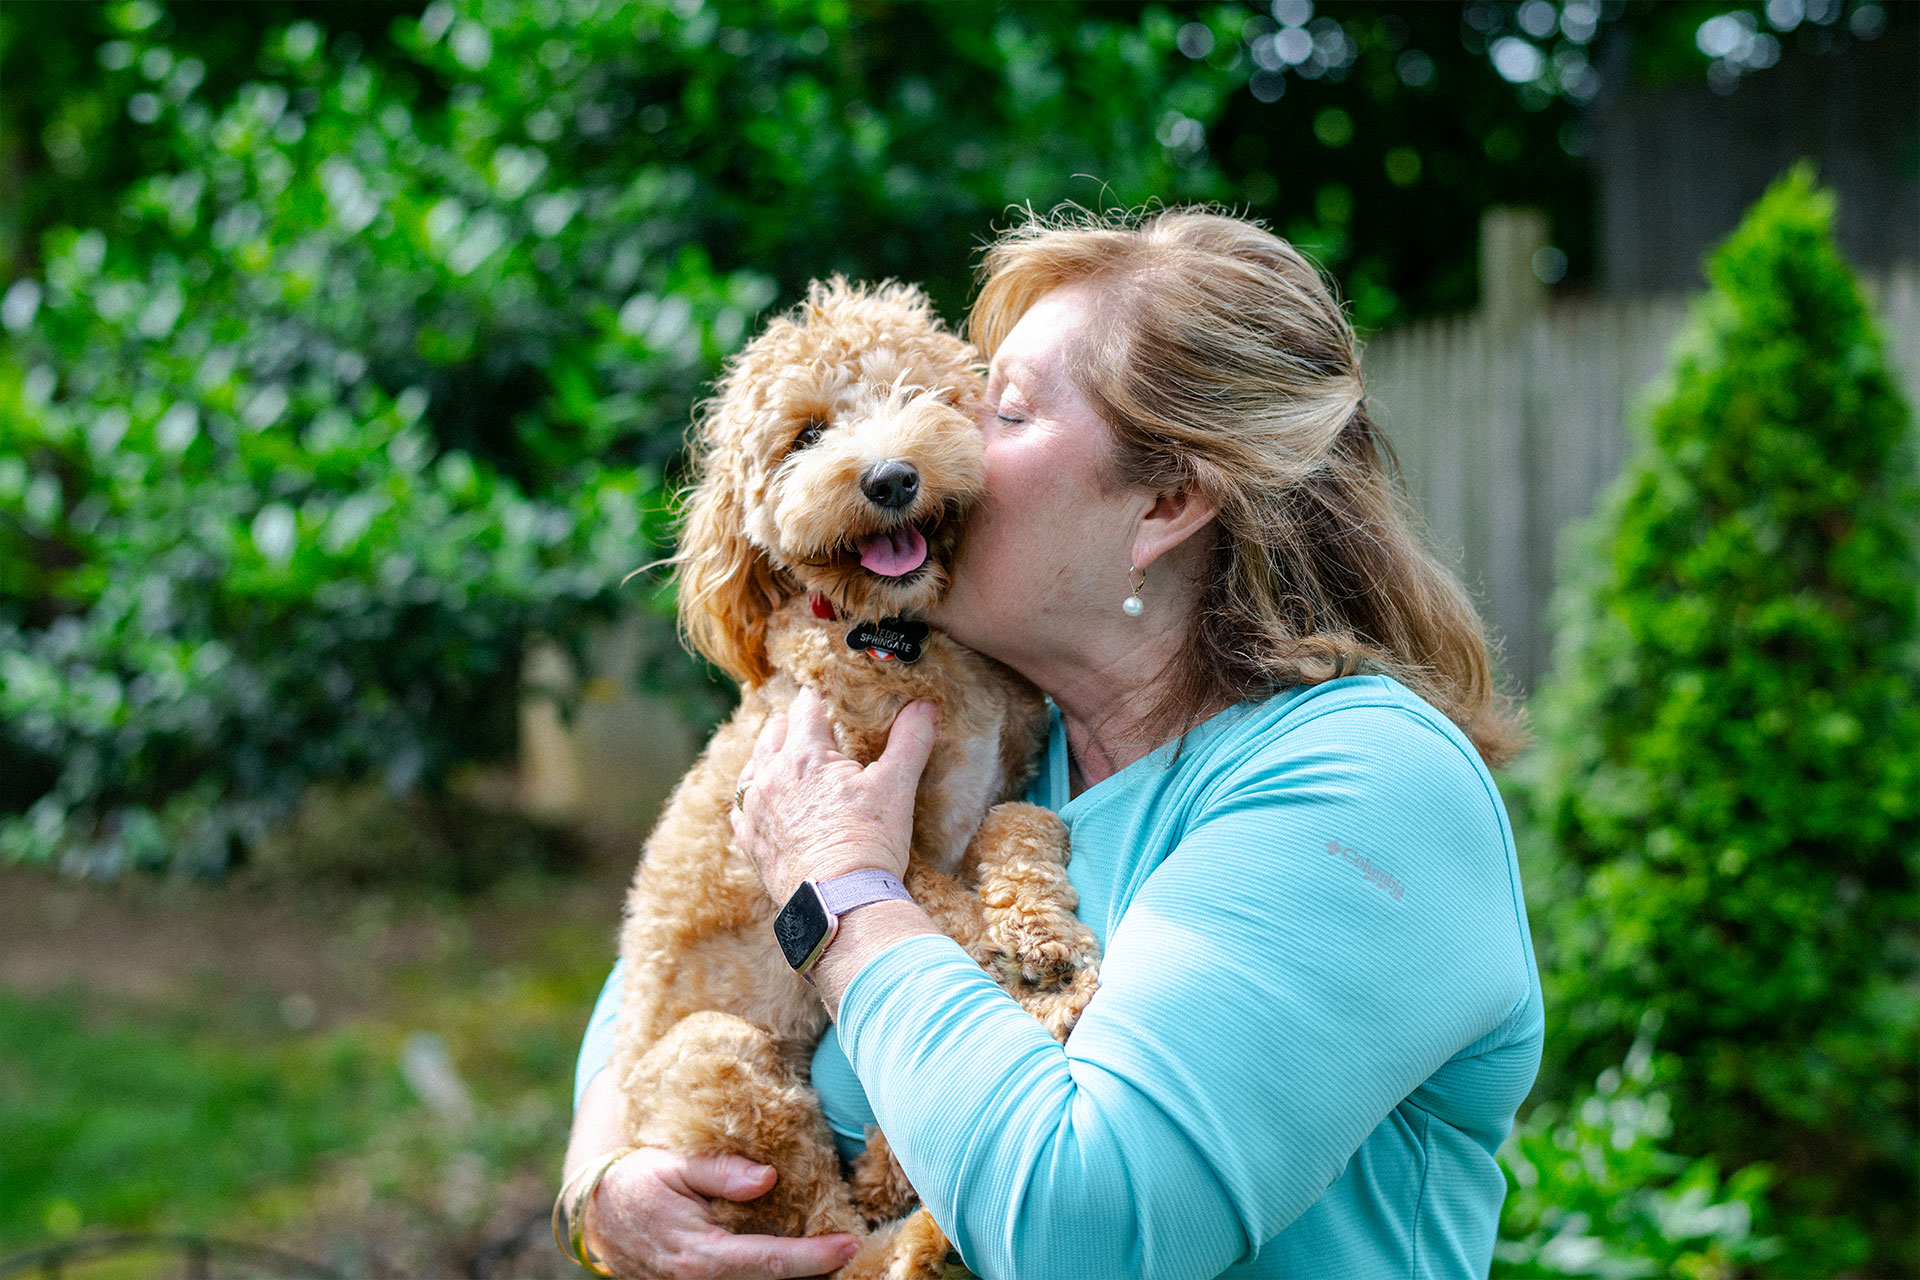 Suzanne holds and kisses her happy dog, Teddy.